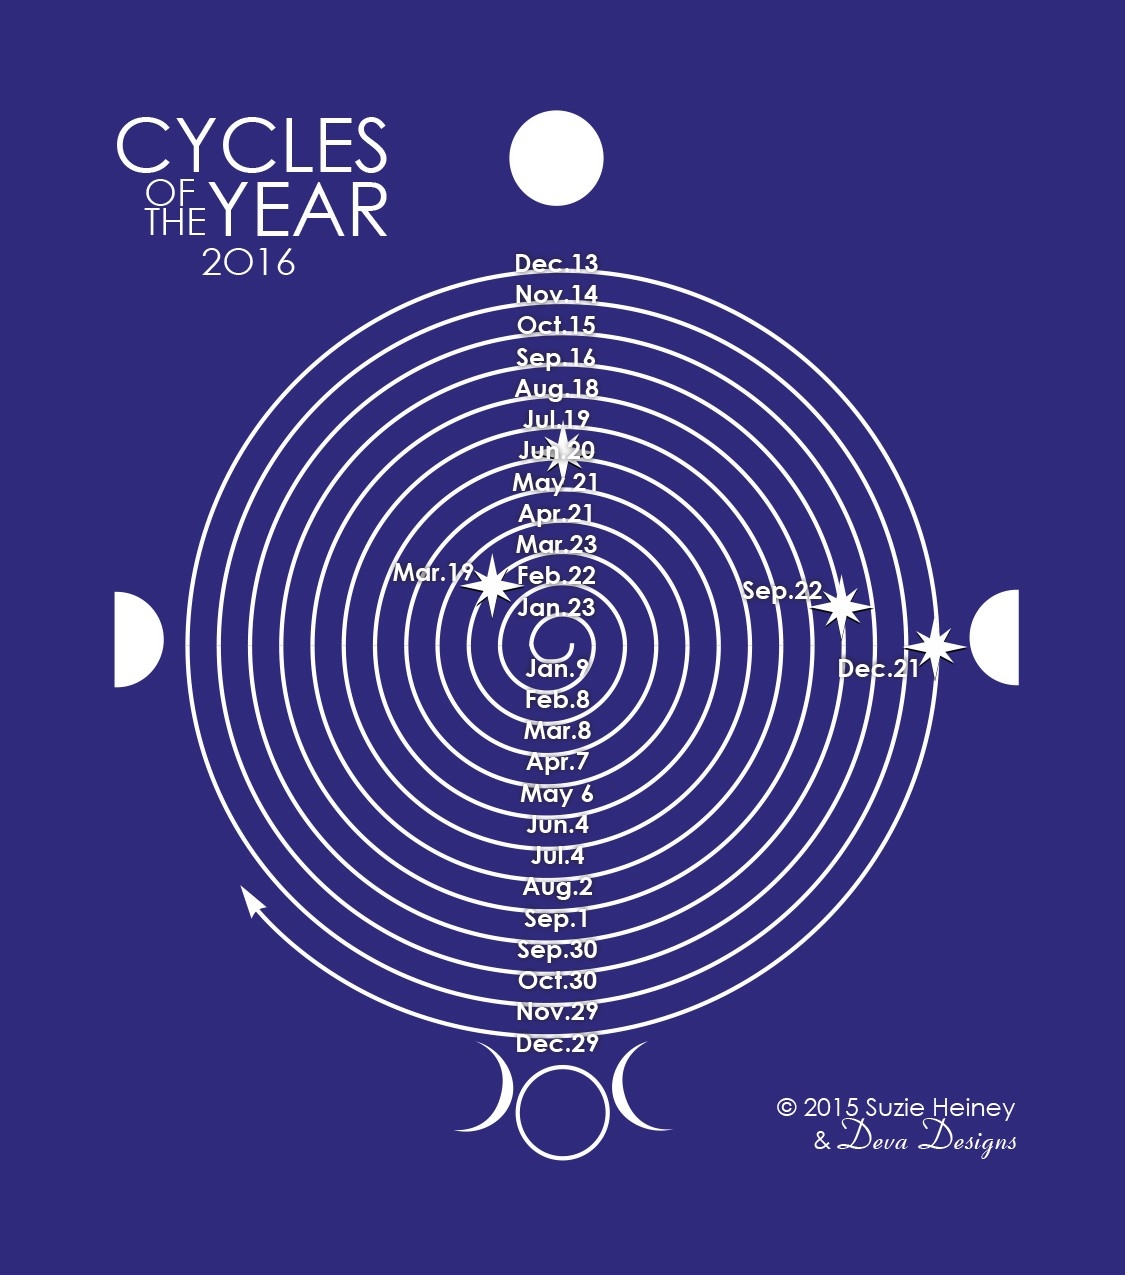 Cycles Of The Year 2019 - Deva Designs - Joyful Gifts And Jewelry To  Desktop Calendar With Lunar Cycle